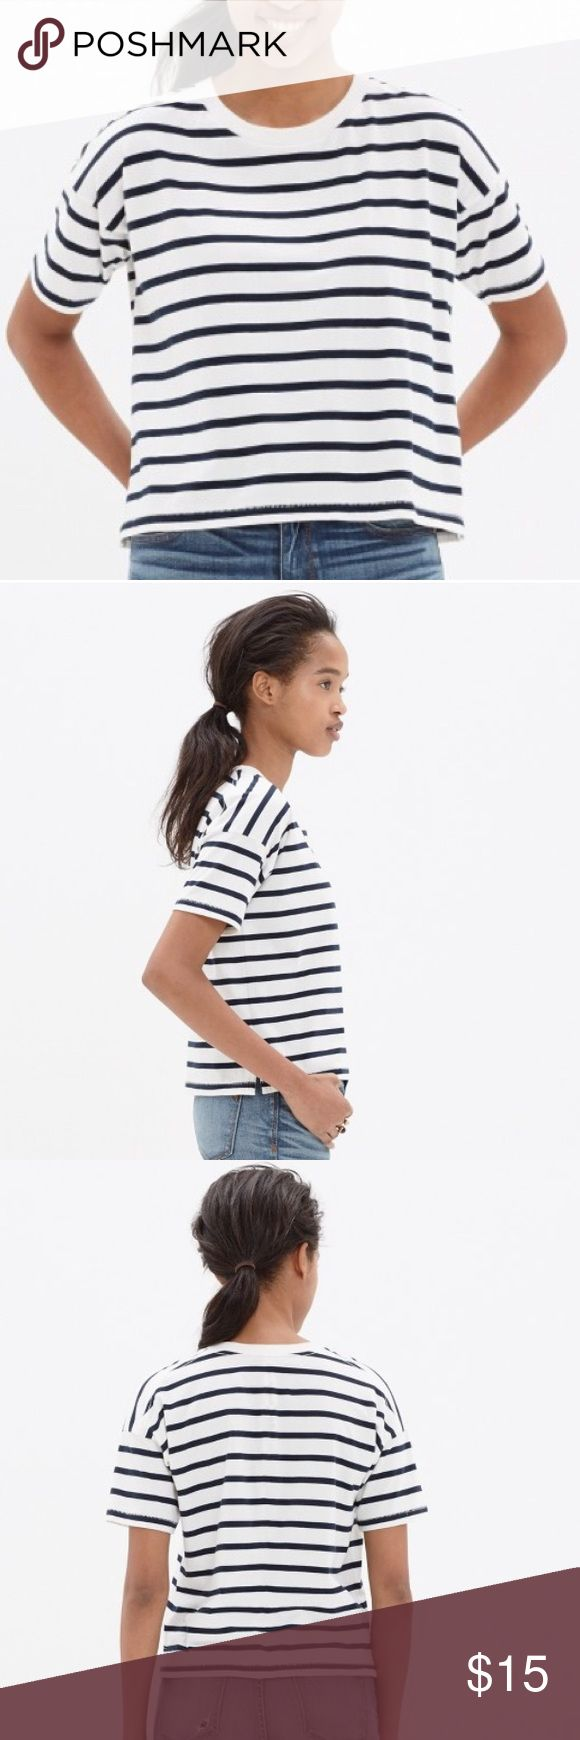 Madewell crop tee in boating stripe White and navy striped cropped tee shirt BH Madewell. Size medium. Madewell Tops Tees - Short Sleeve